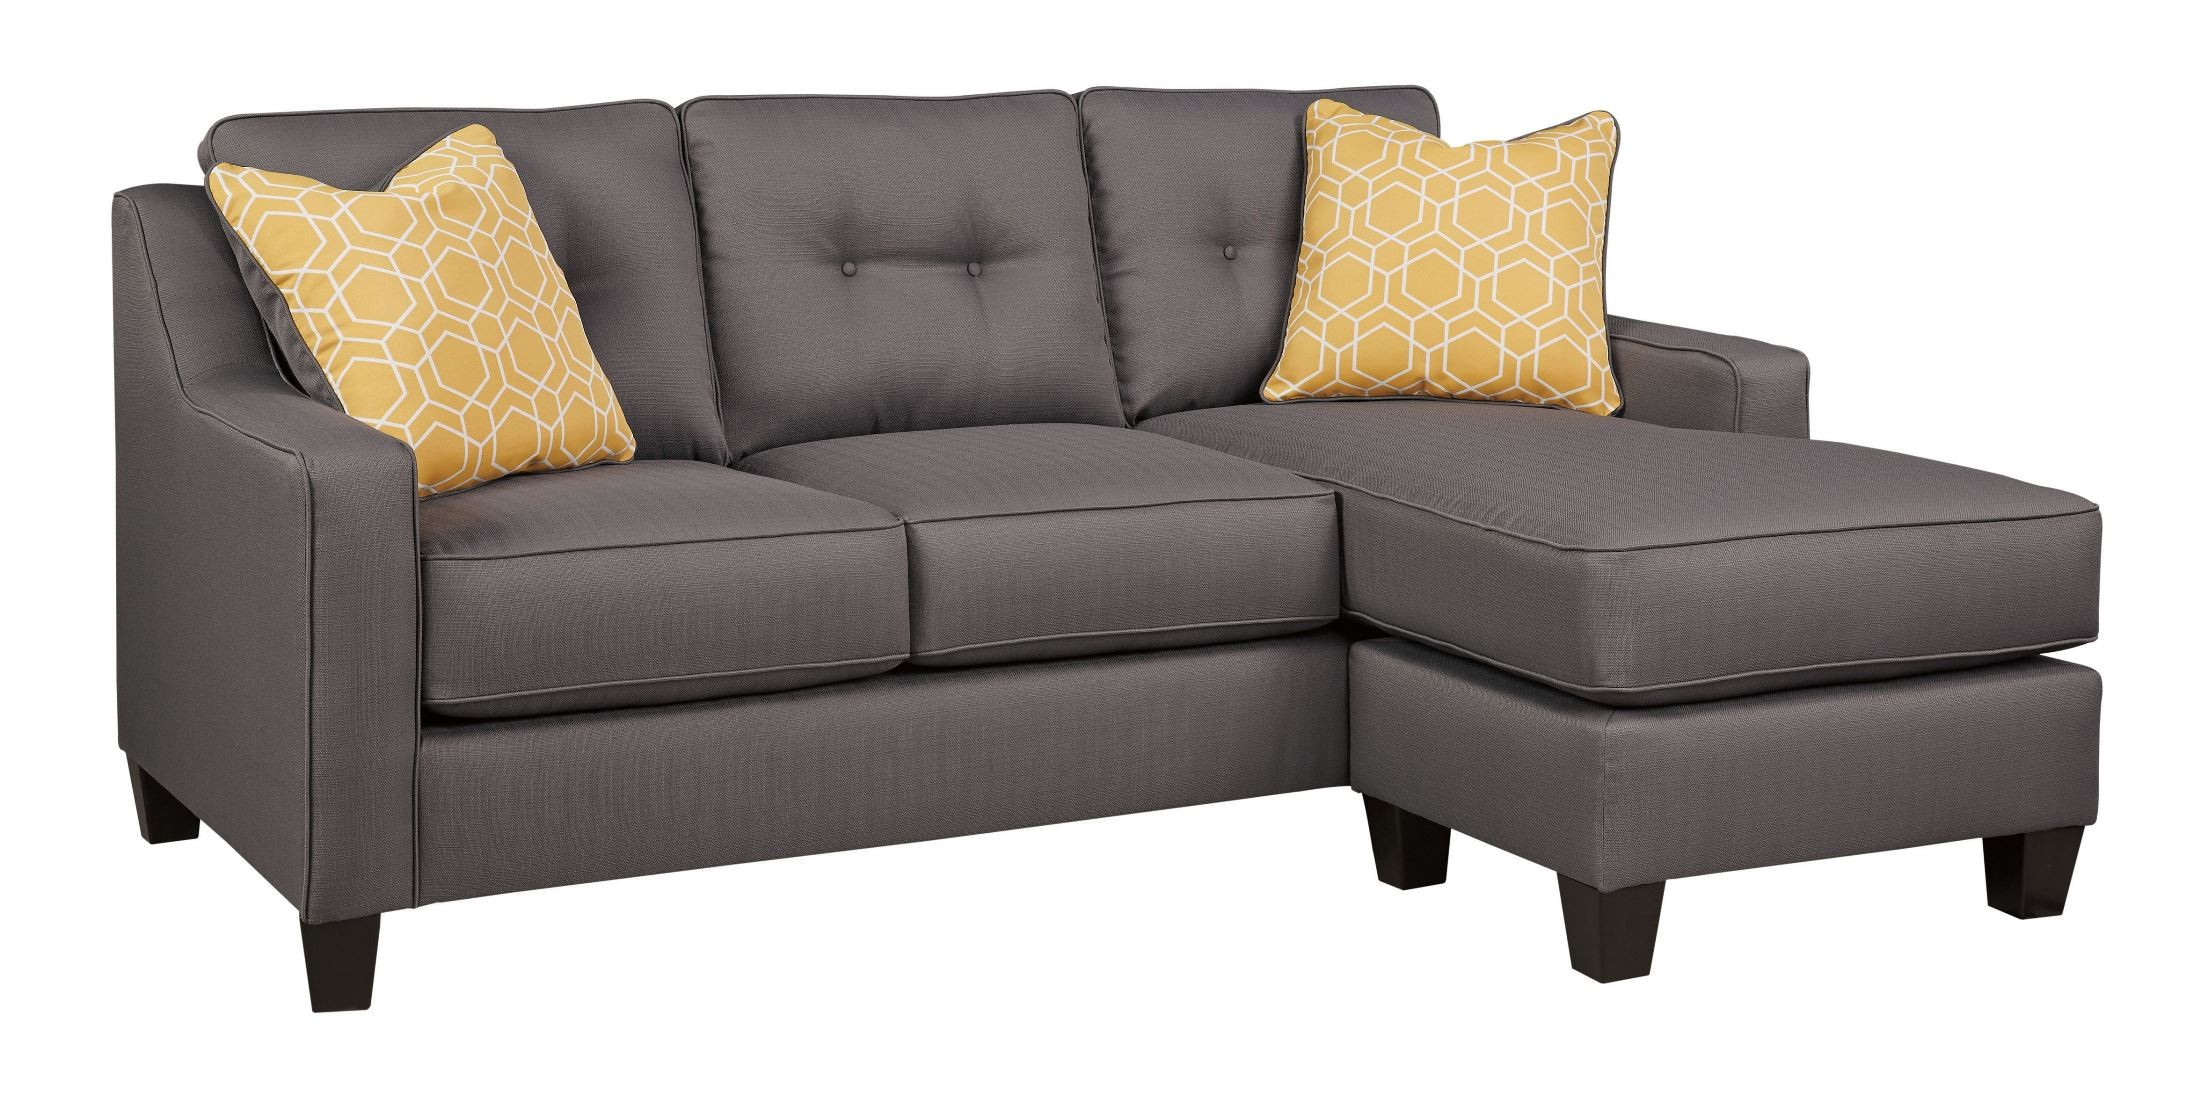 Al Nuvella Gray Sofa Chaise from Ashley